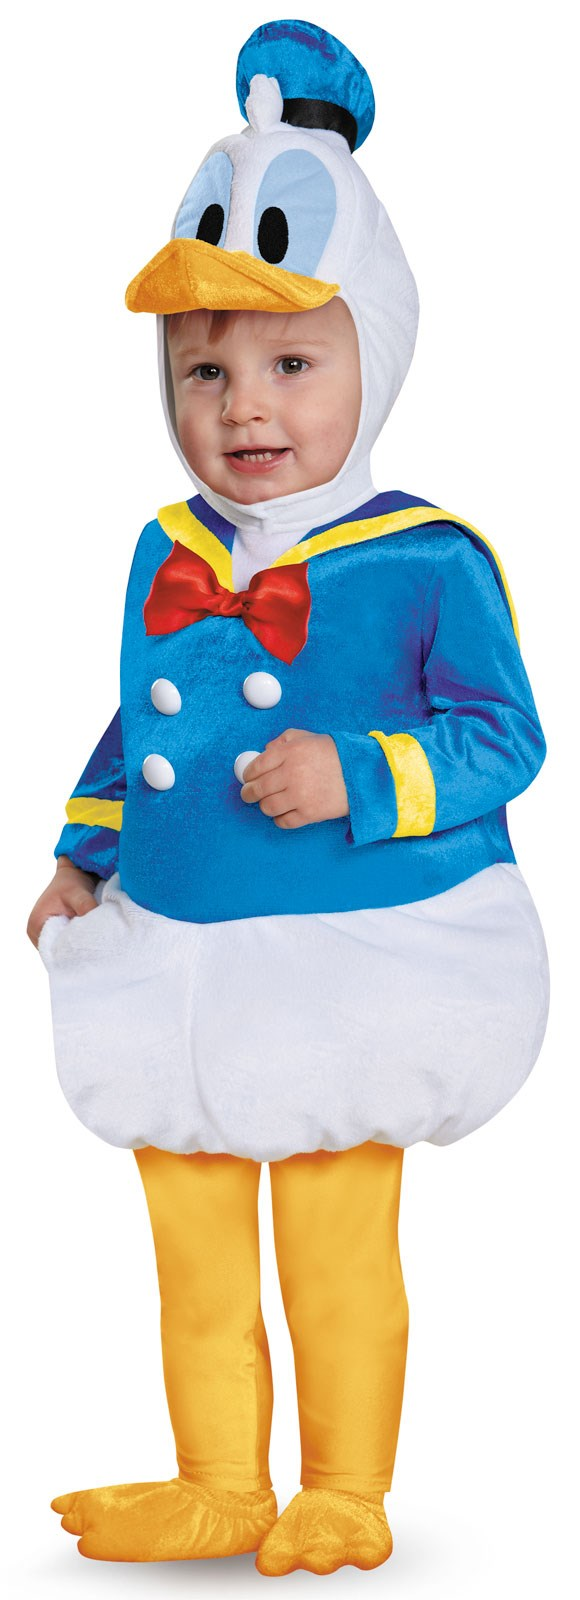 Prestige Toddler Donald Duck Costume | BuyCostumes.com